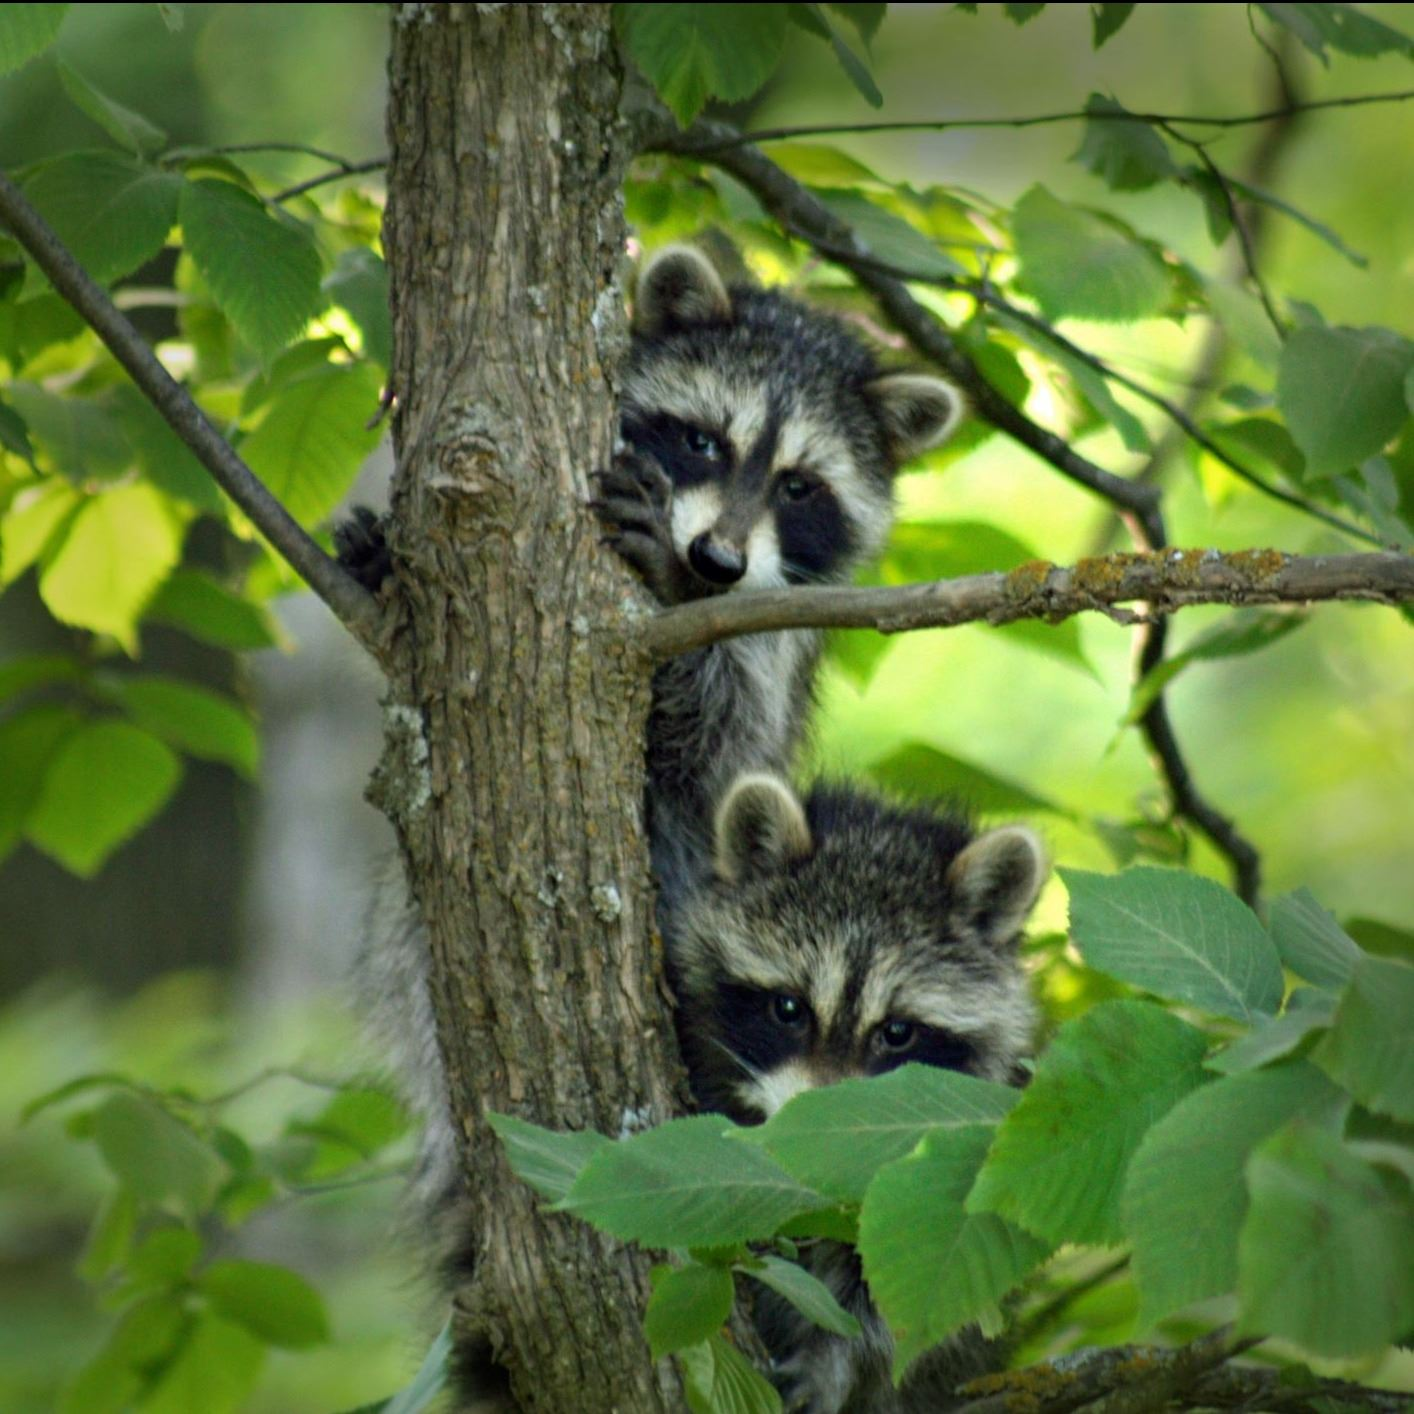 Young Raccoons at play.